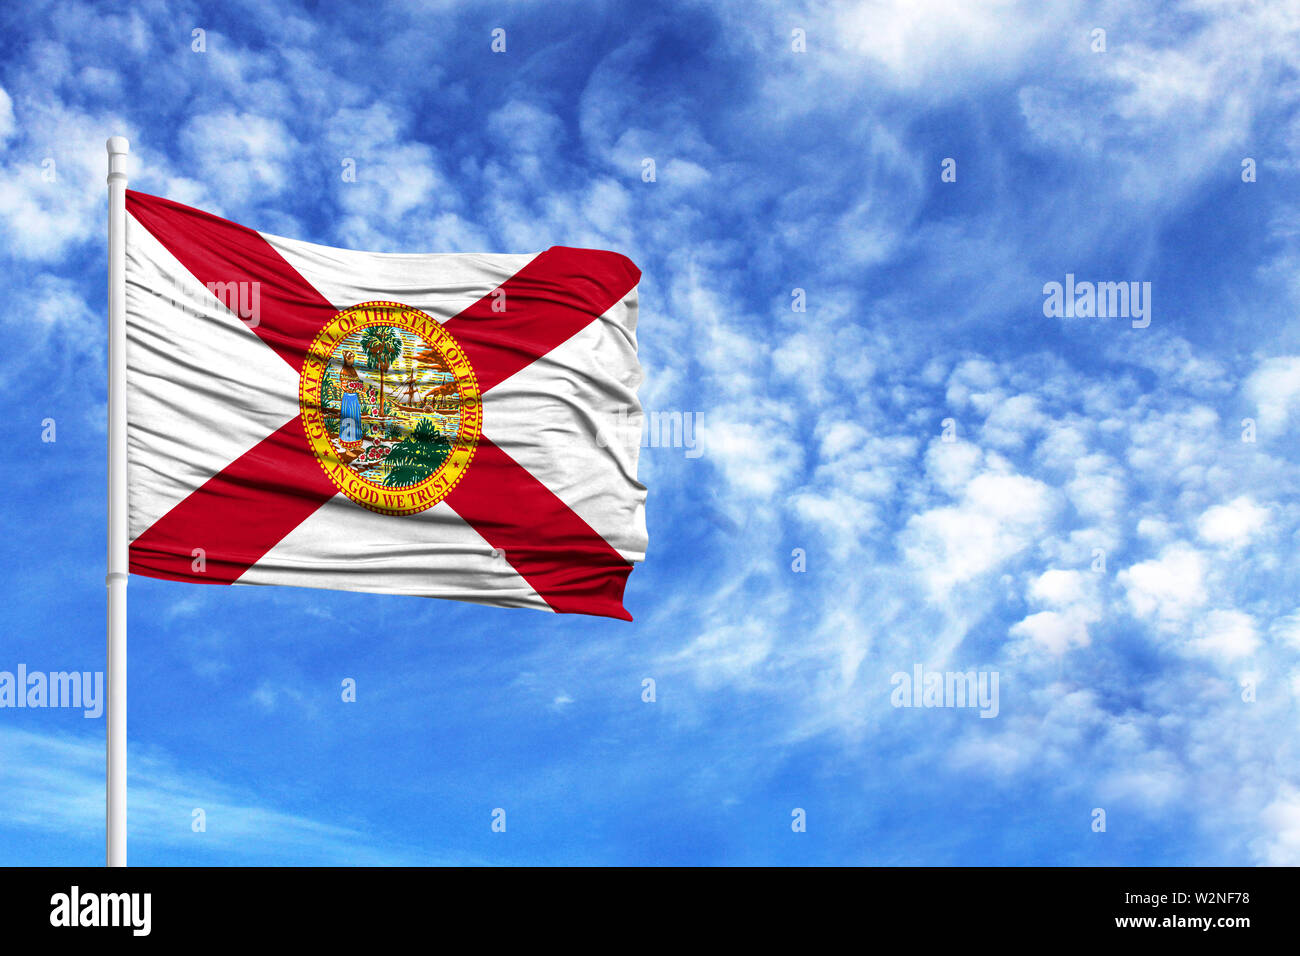 National flag State of Florida on a flagpole in front of blue sky - Stock Image